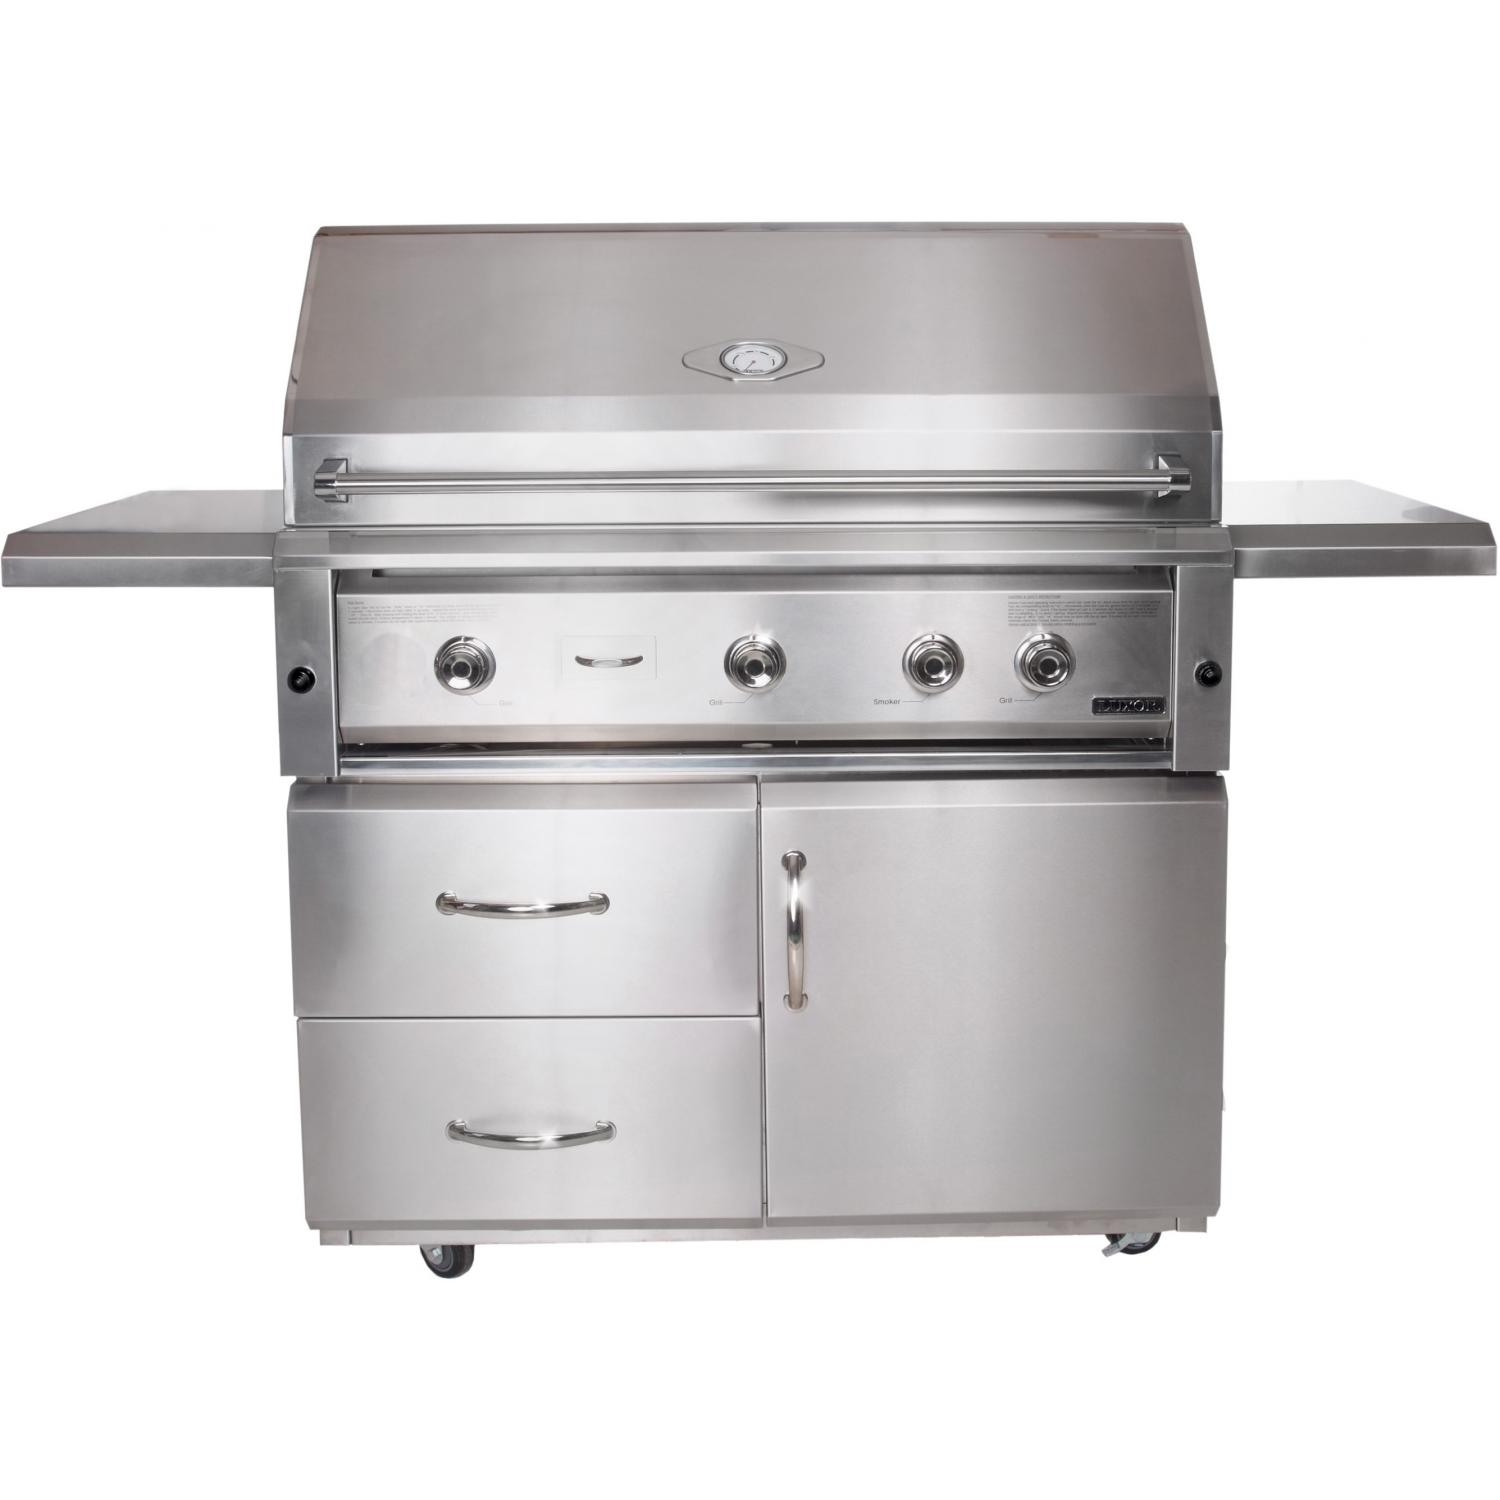 Luxor Gas Grills 42 Inch All Infrared Natural Gas Grill On Cart AHT-42F-NG